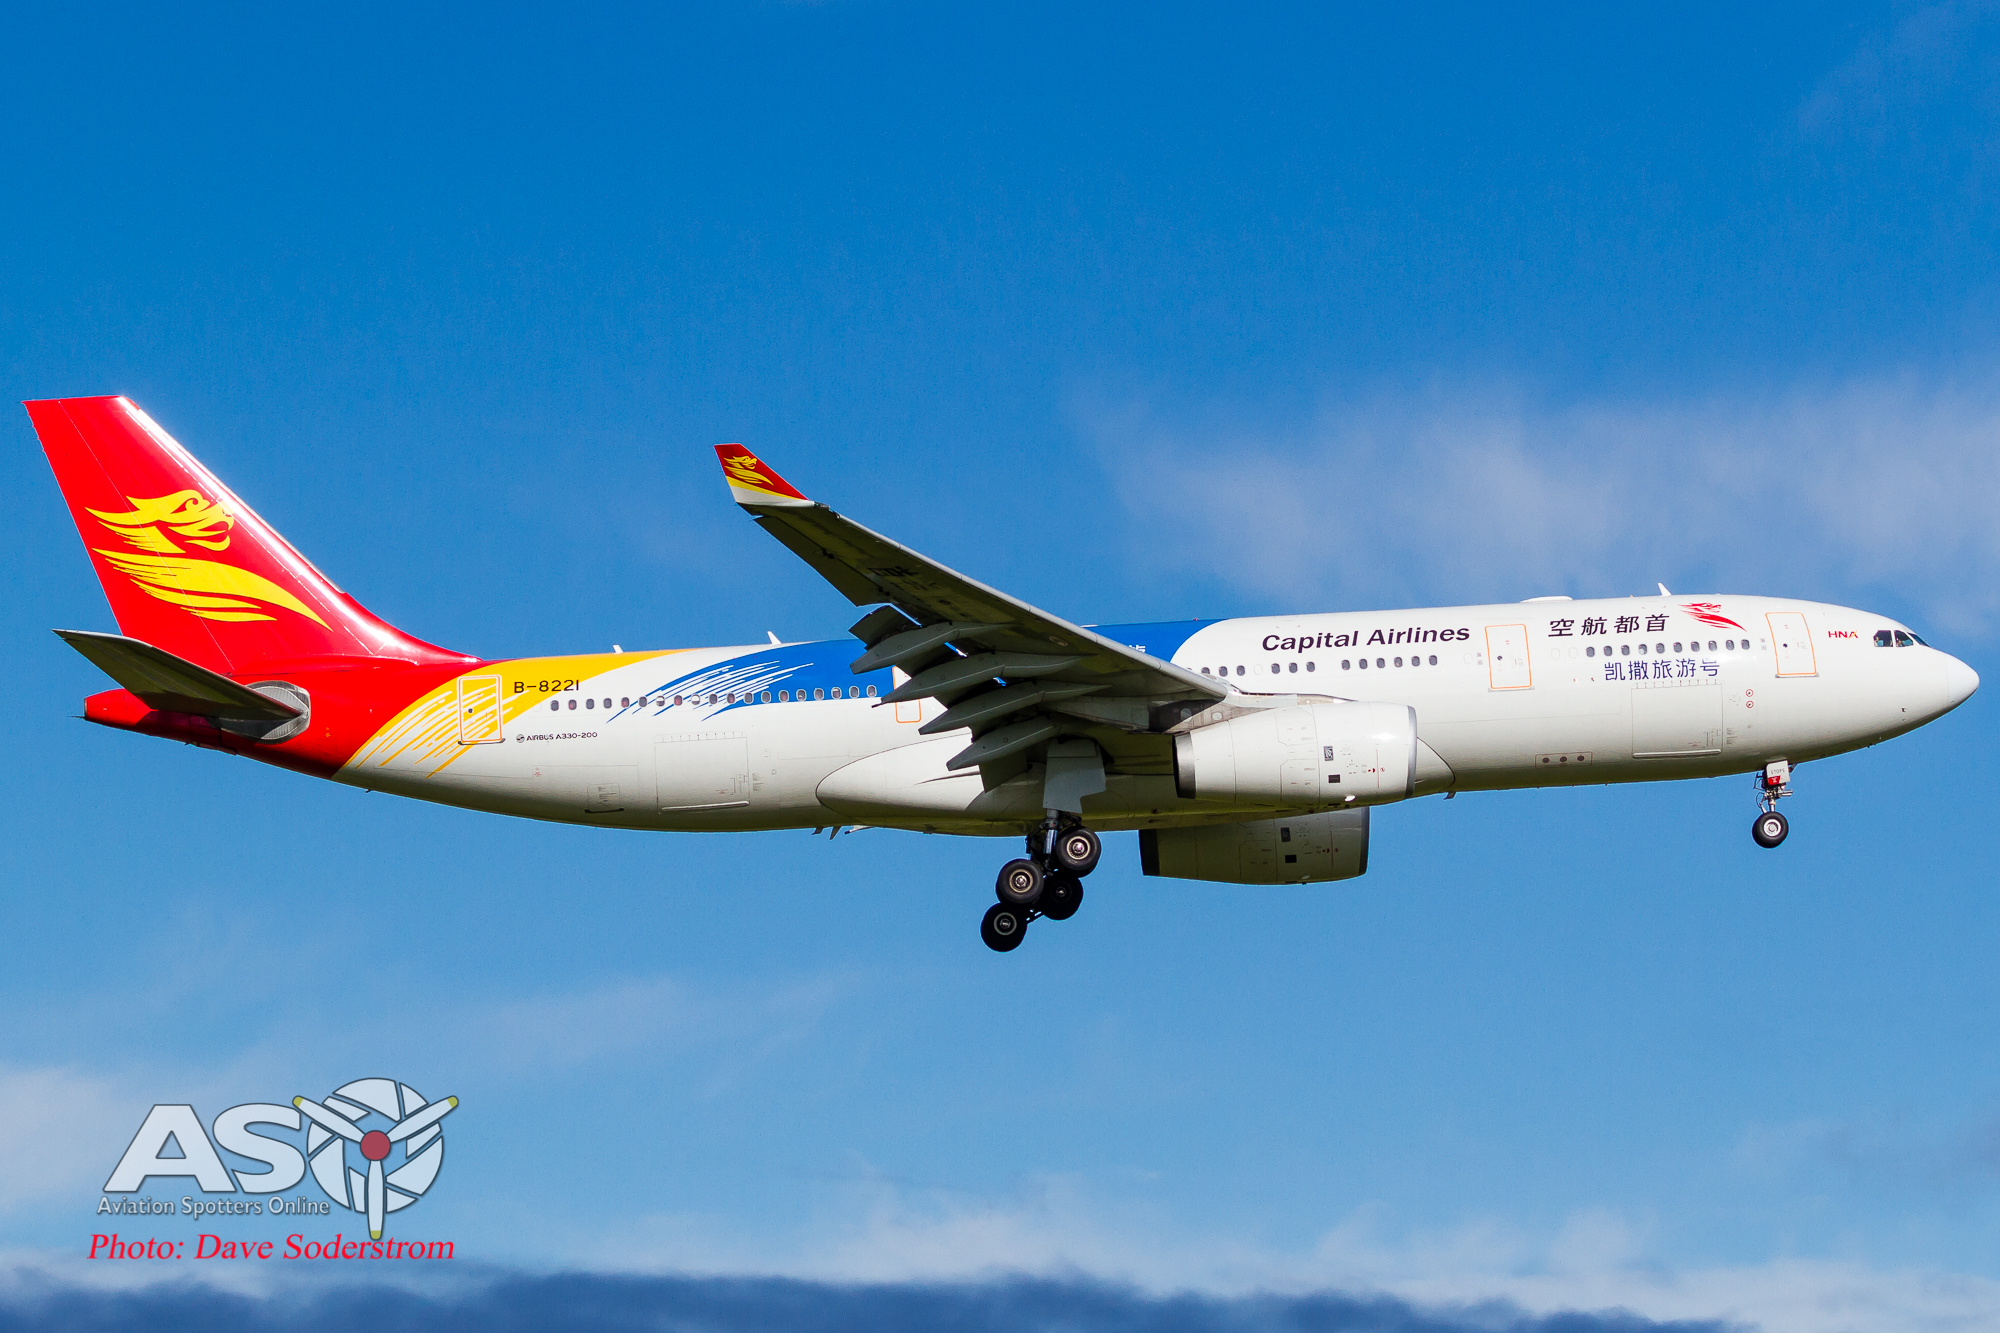 Beijing Capital Airlines touches down at Melbourne Tullamarine Airport.